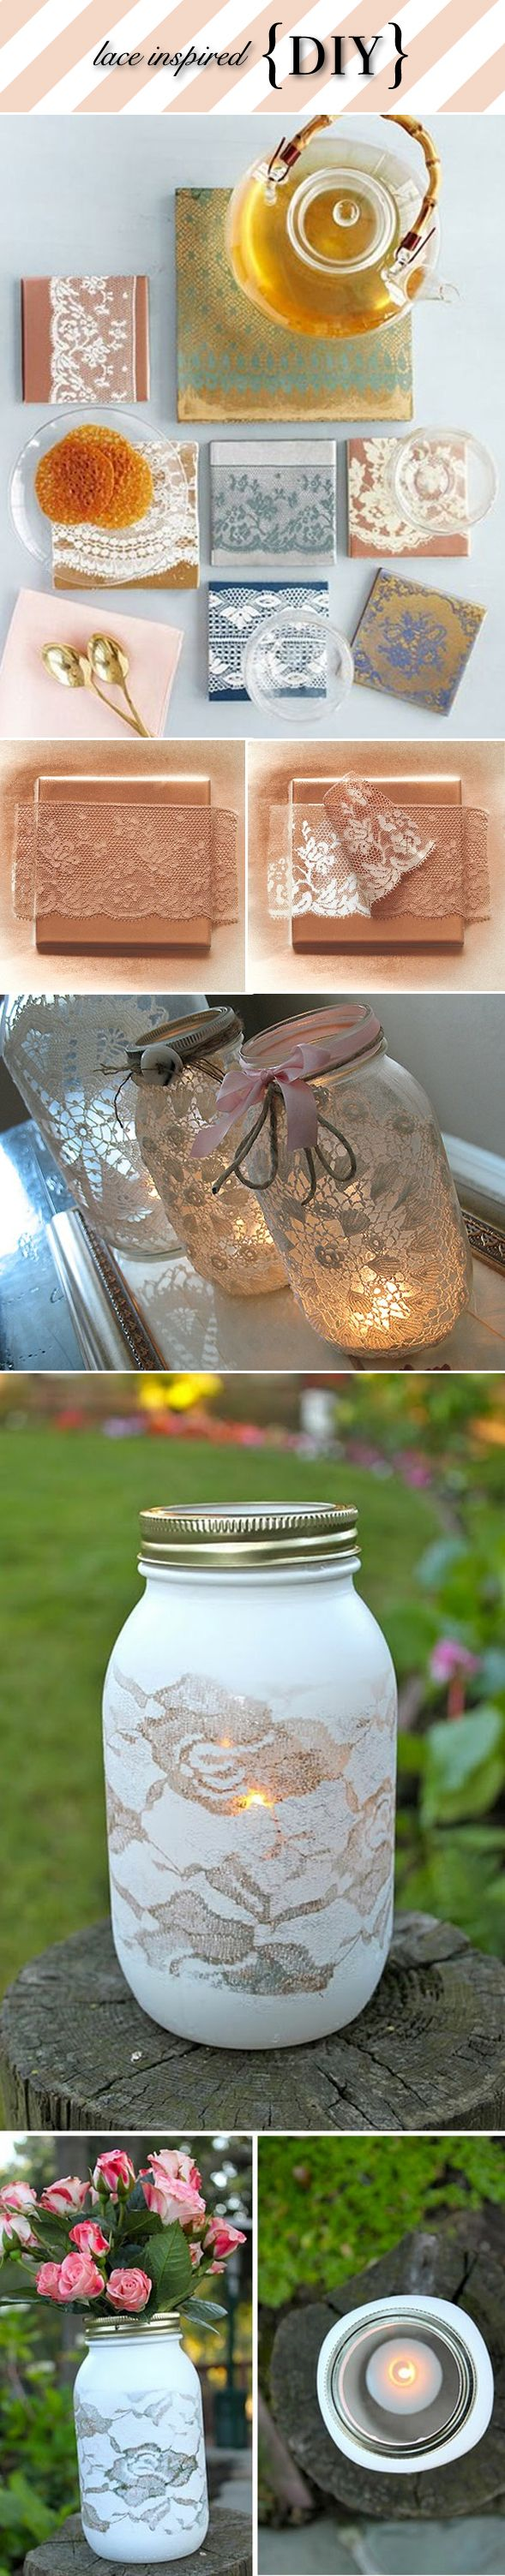 DIY Lace Mason Jar Candles diy crafts